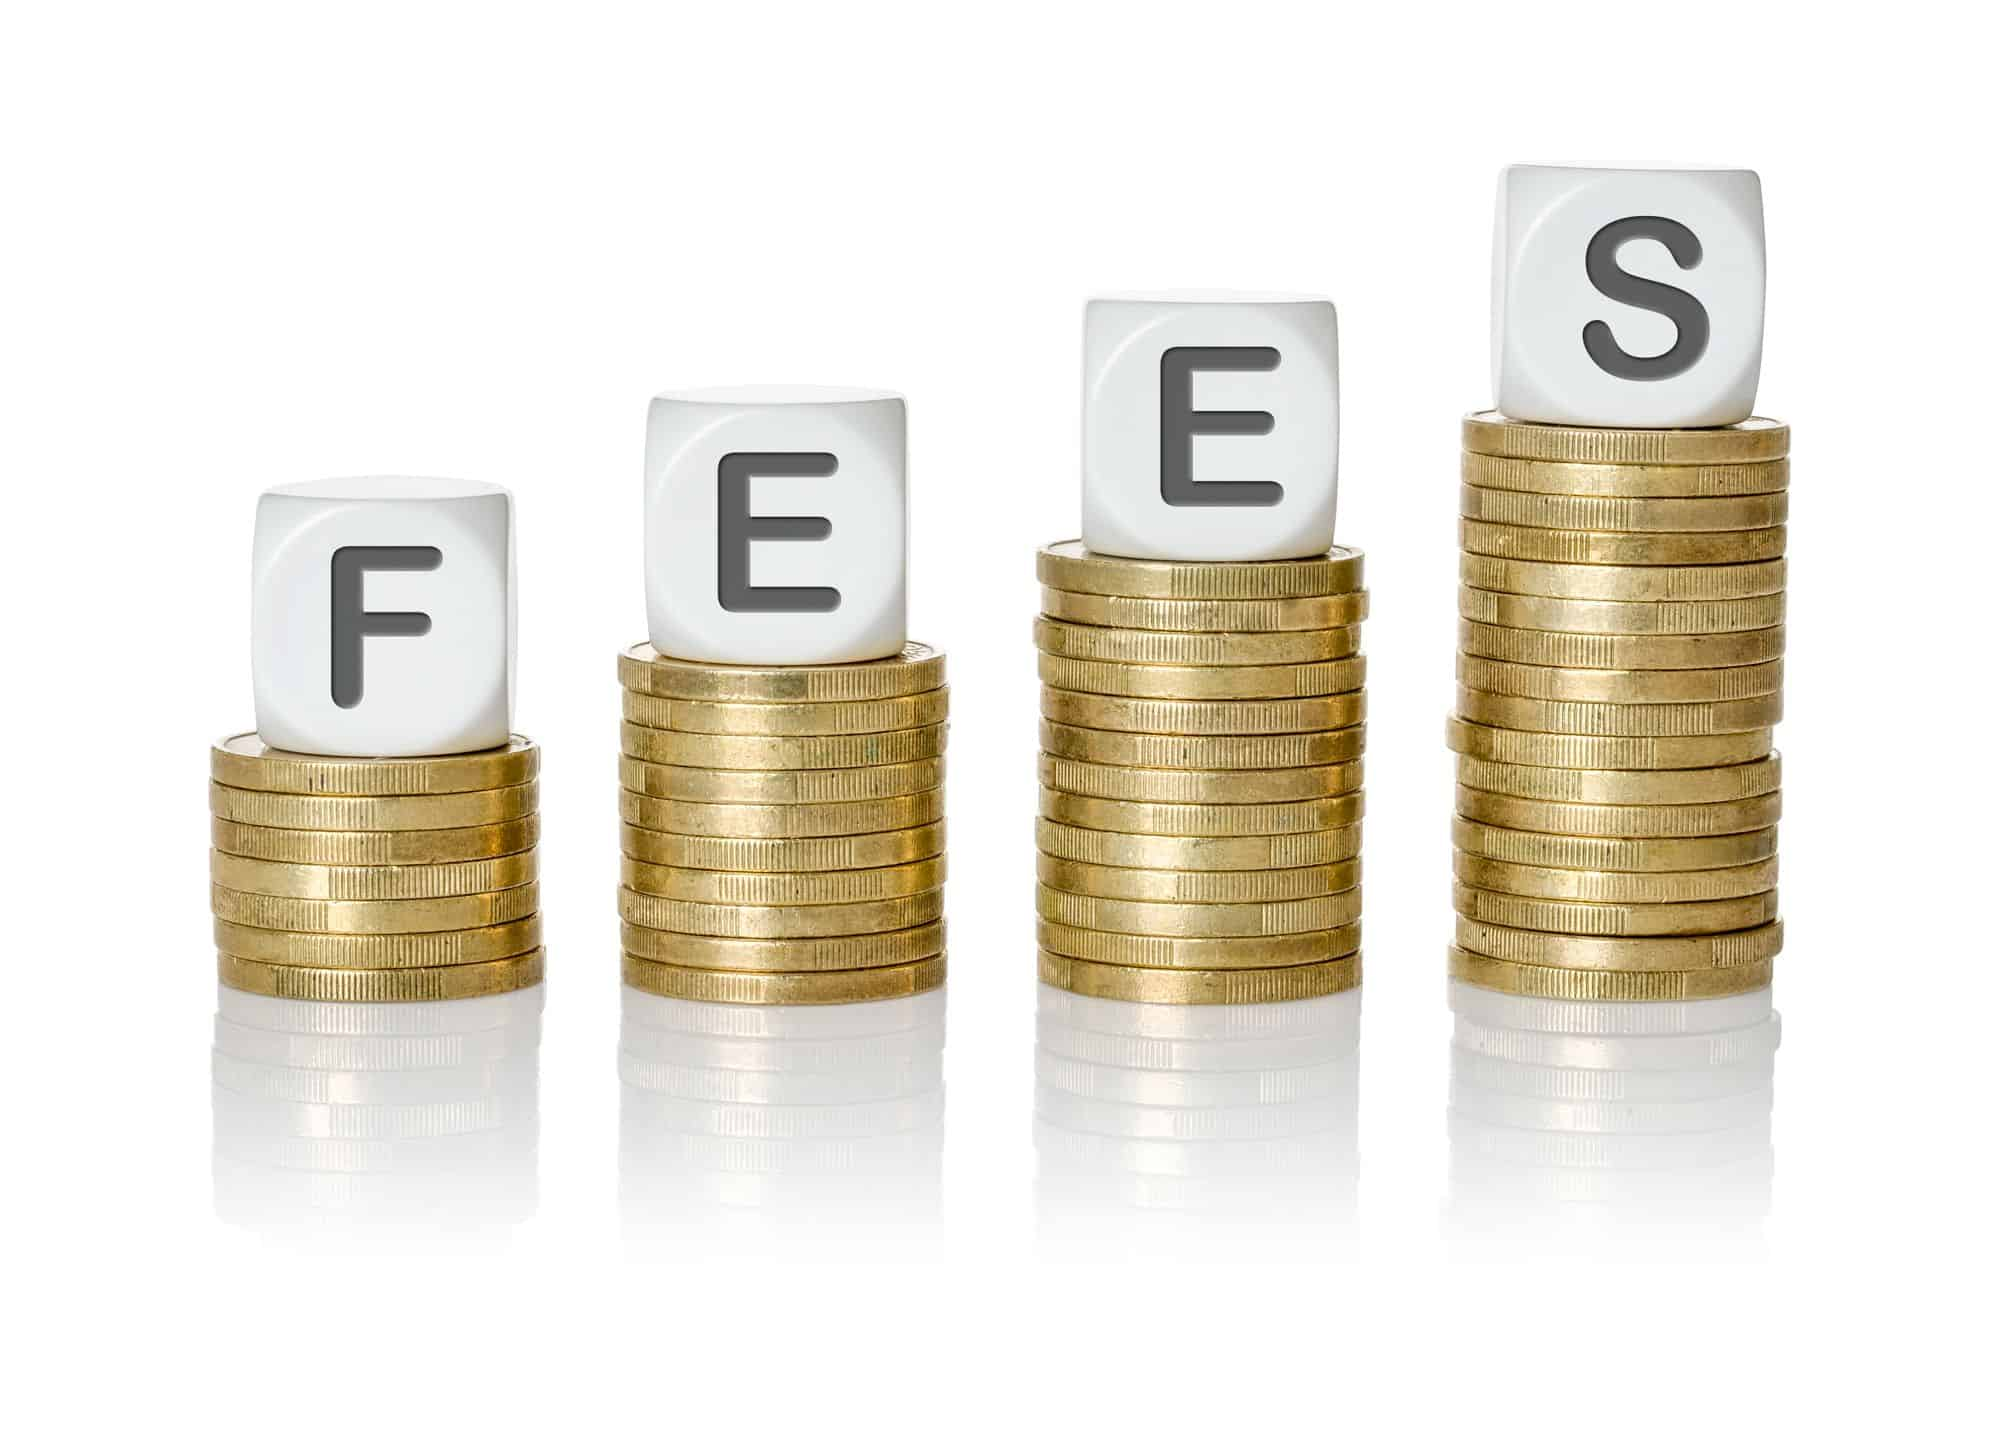 October 2020 revision of CPFIS fees and what it means to you